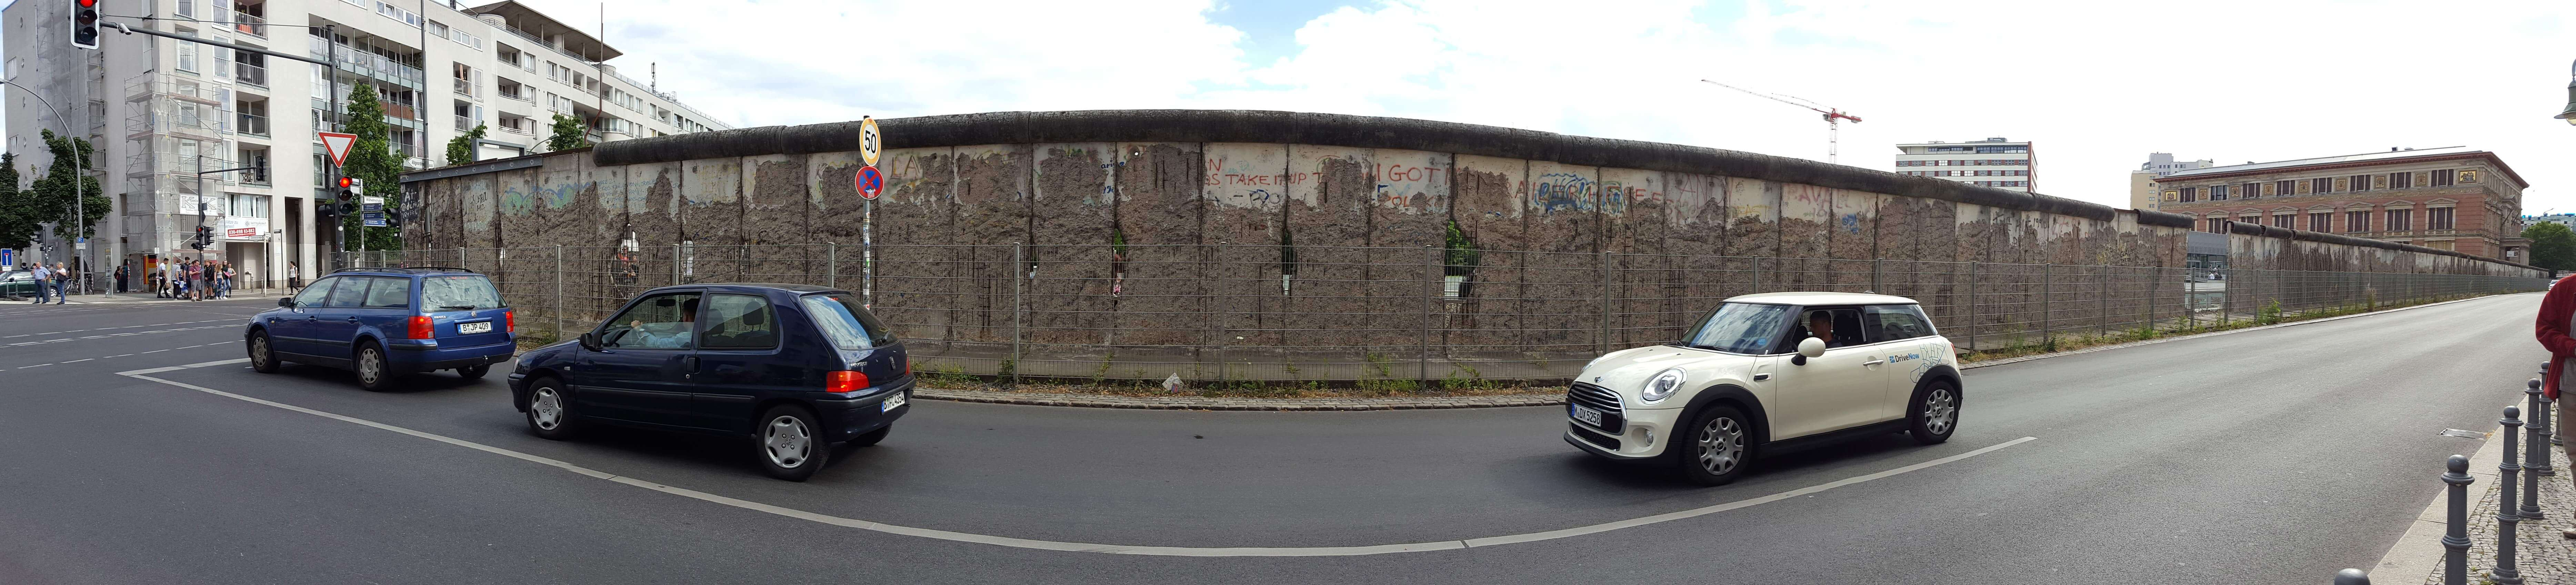 Berlin Wall Panorama